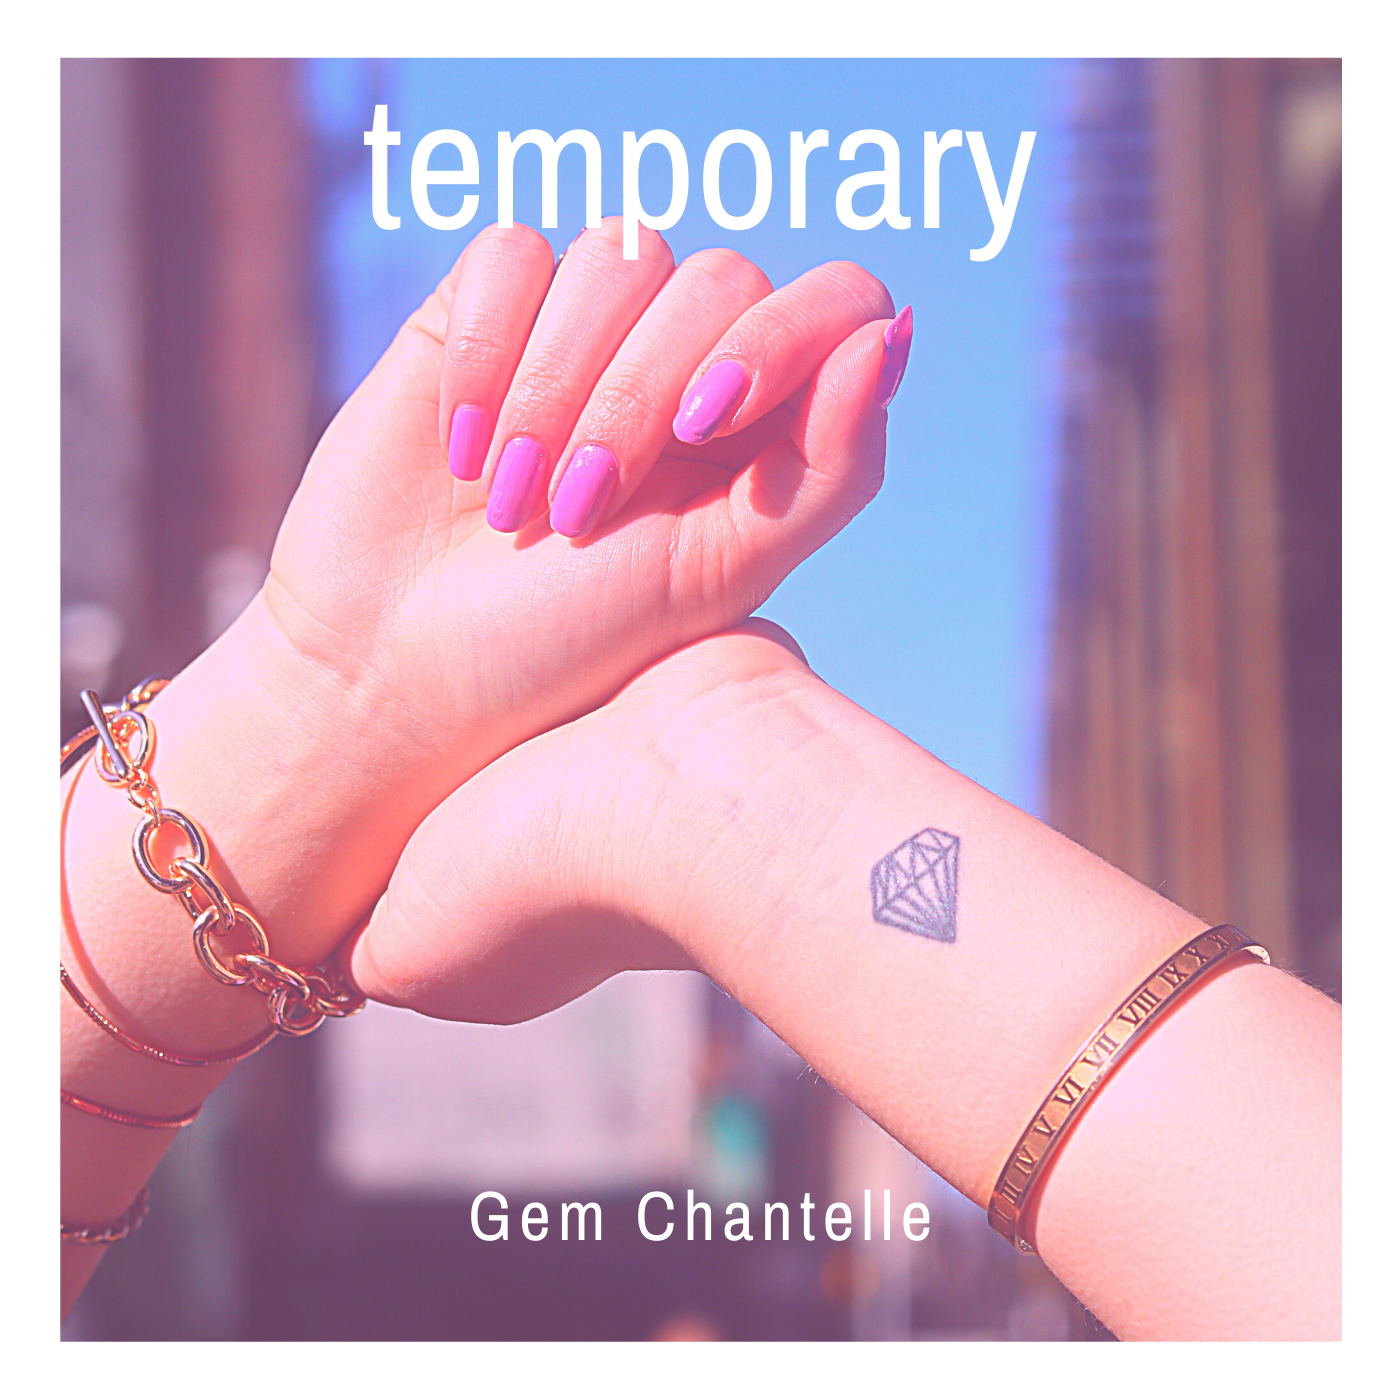 Gem Chantelle Returns With New Single 'Temporary'